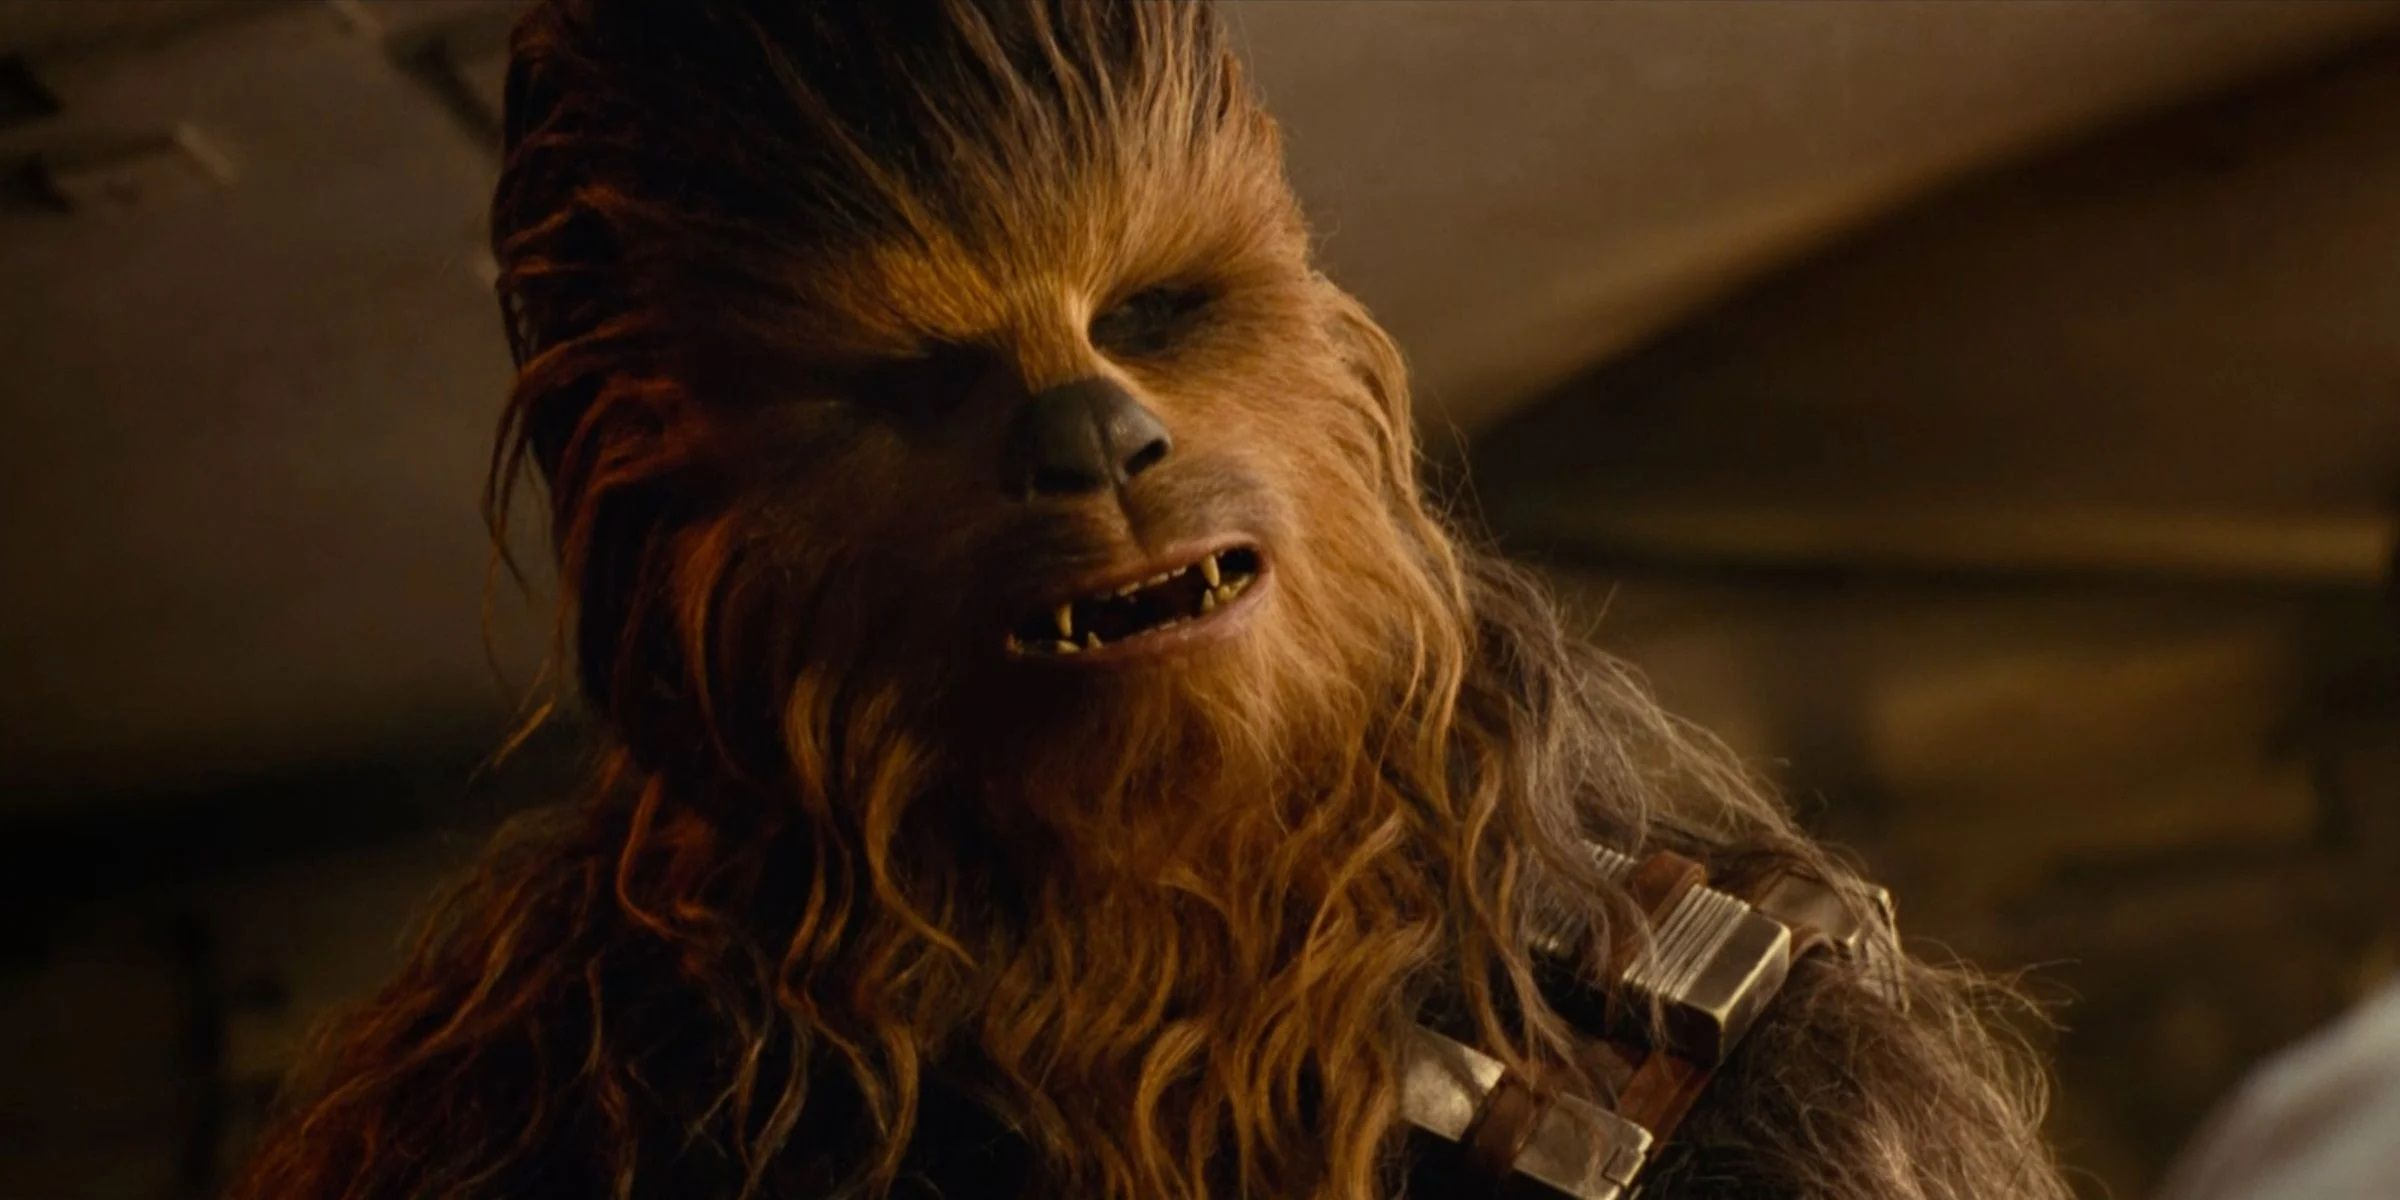 Star Wars: The Best Plot Twist From Every Movie, Ranked